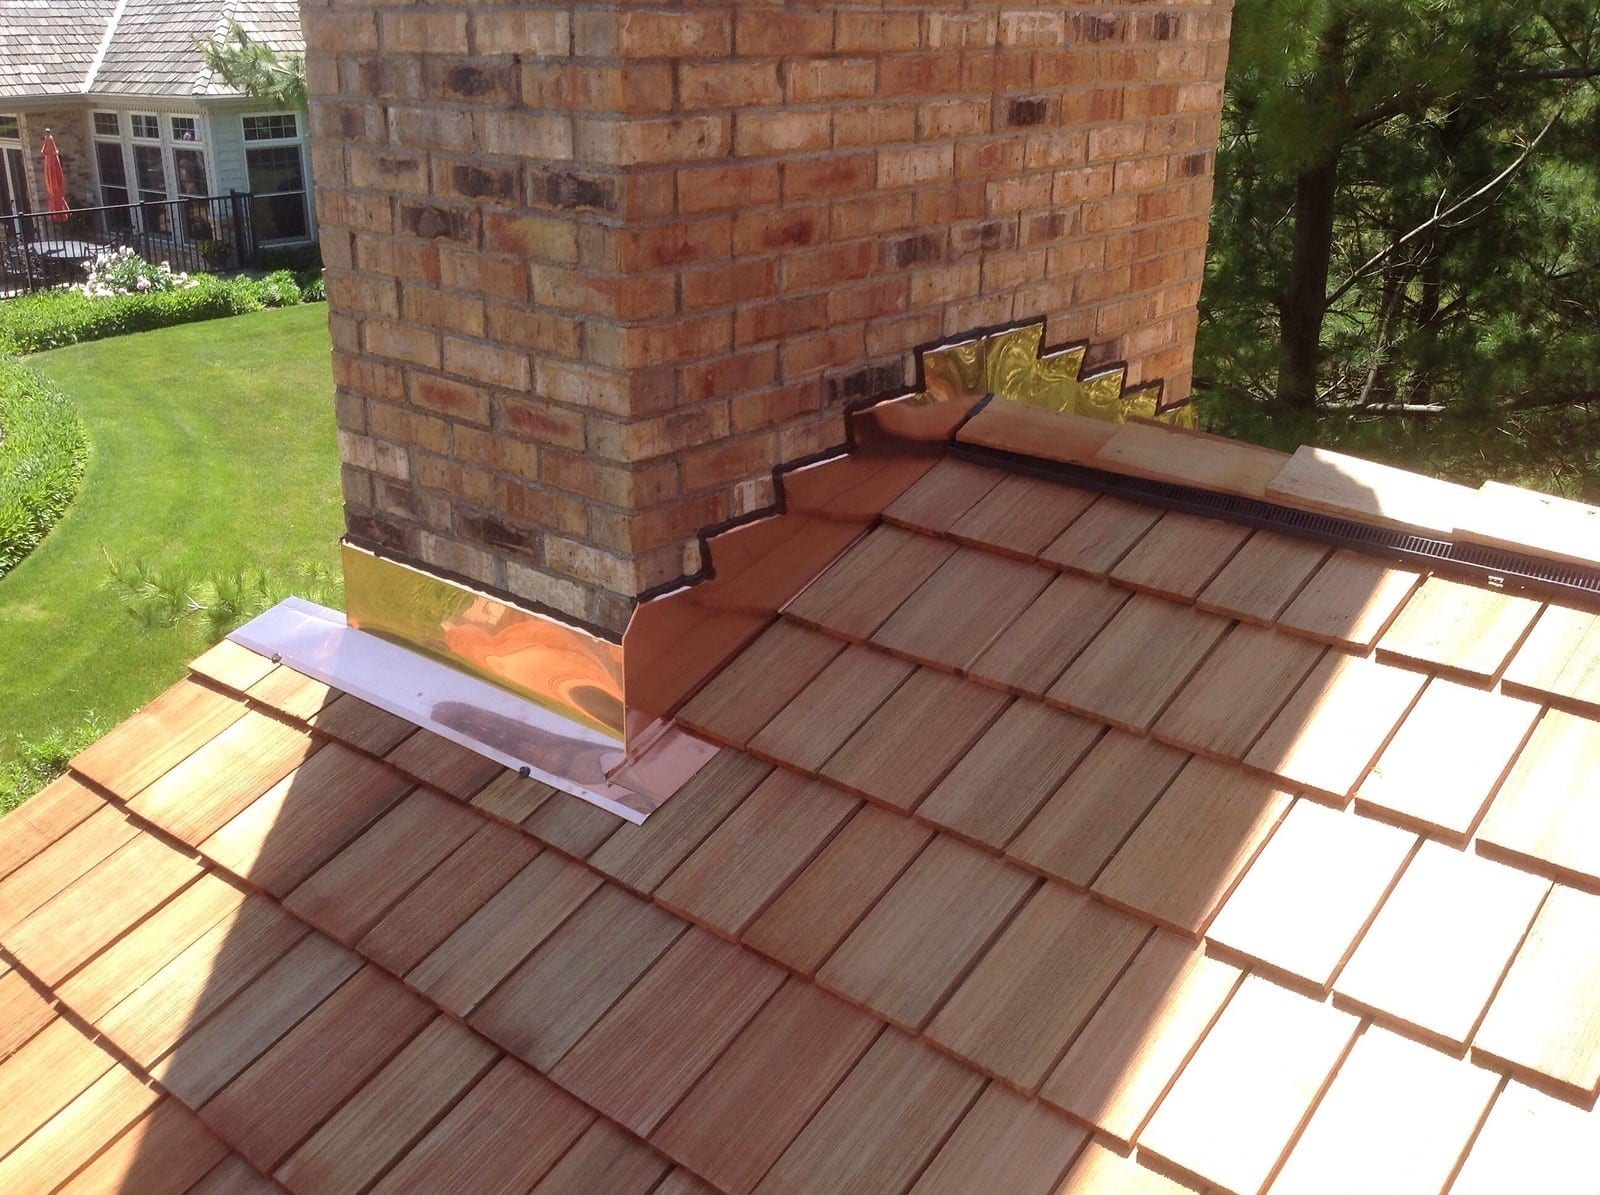 Roof replacement gives you a new roof and is required if your current roof has sustained too much damage